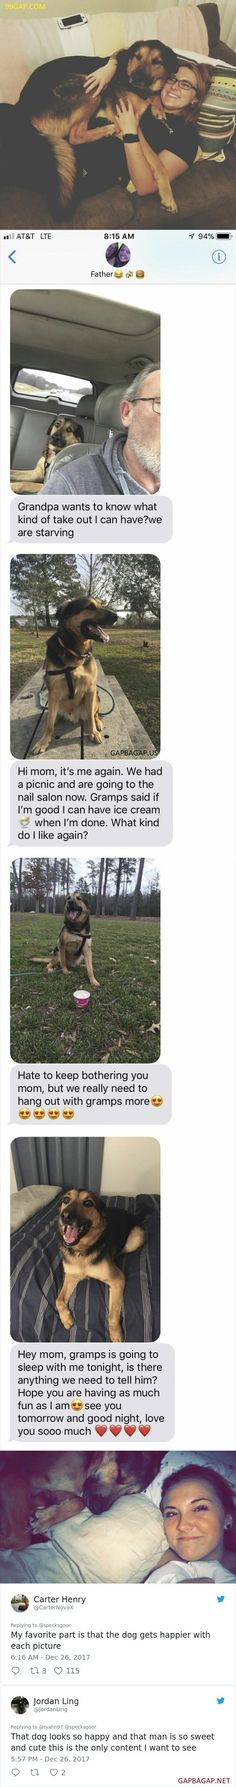 Top 8 #Funny Tweets Collection ft. Funny Dog